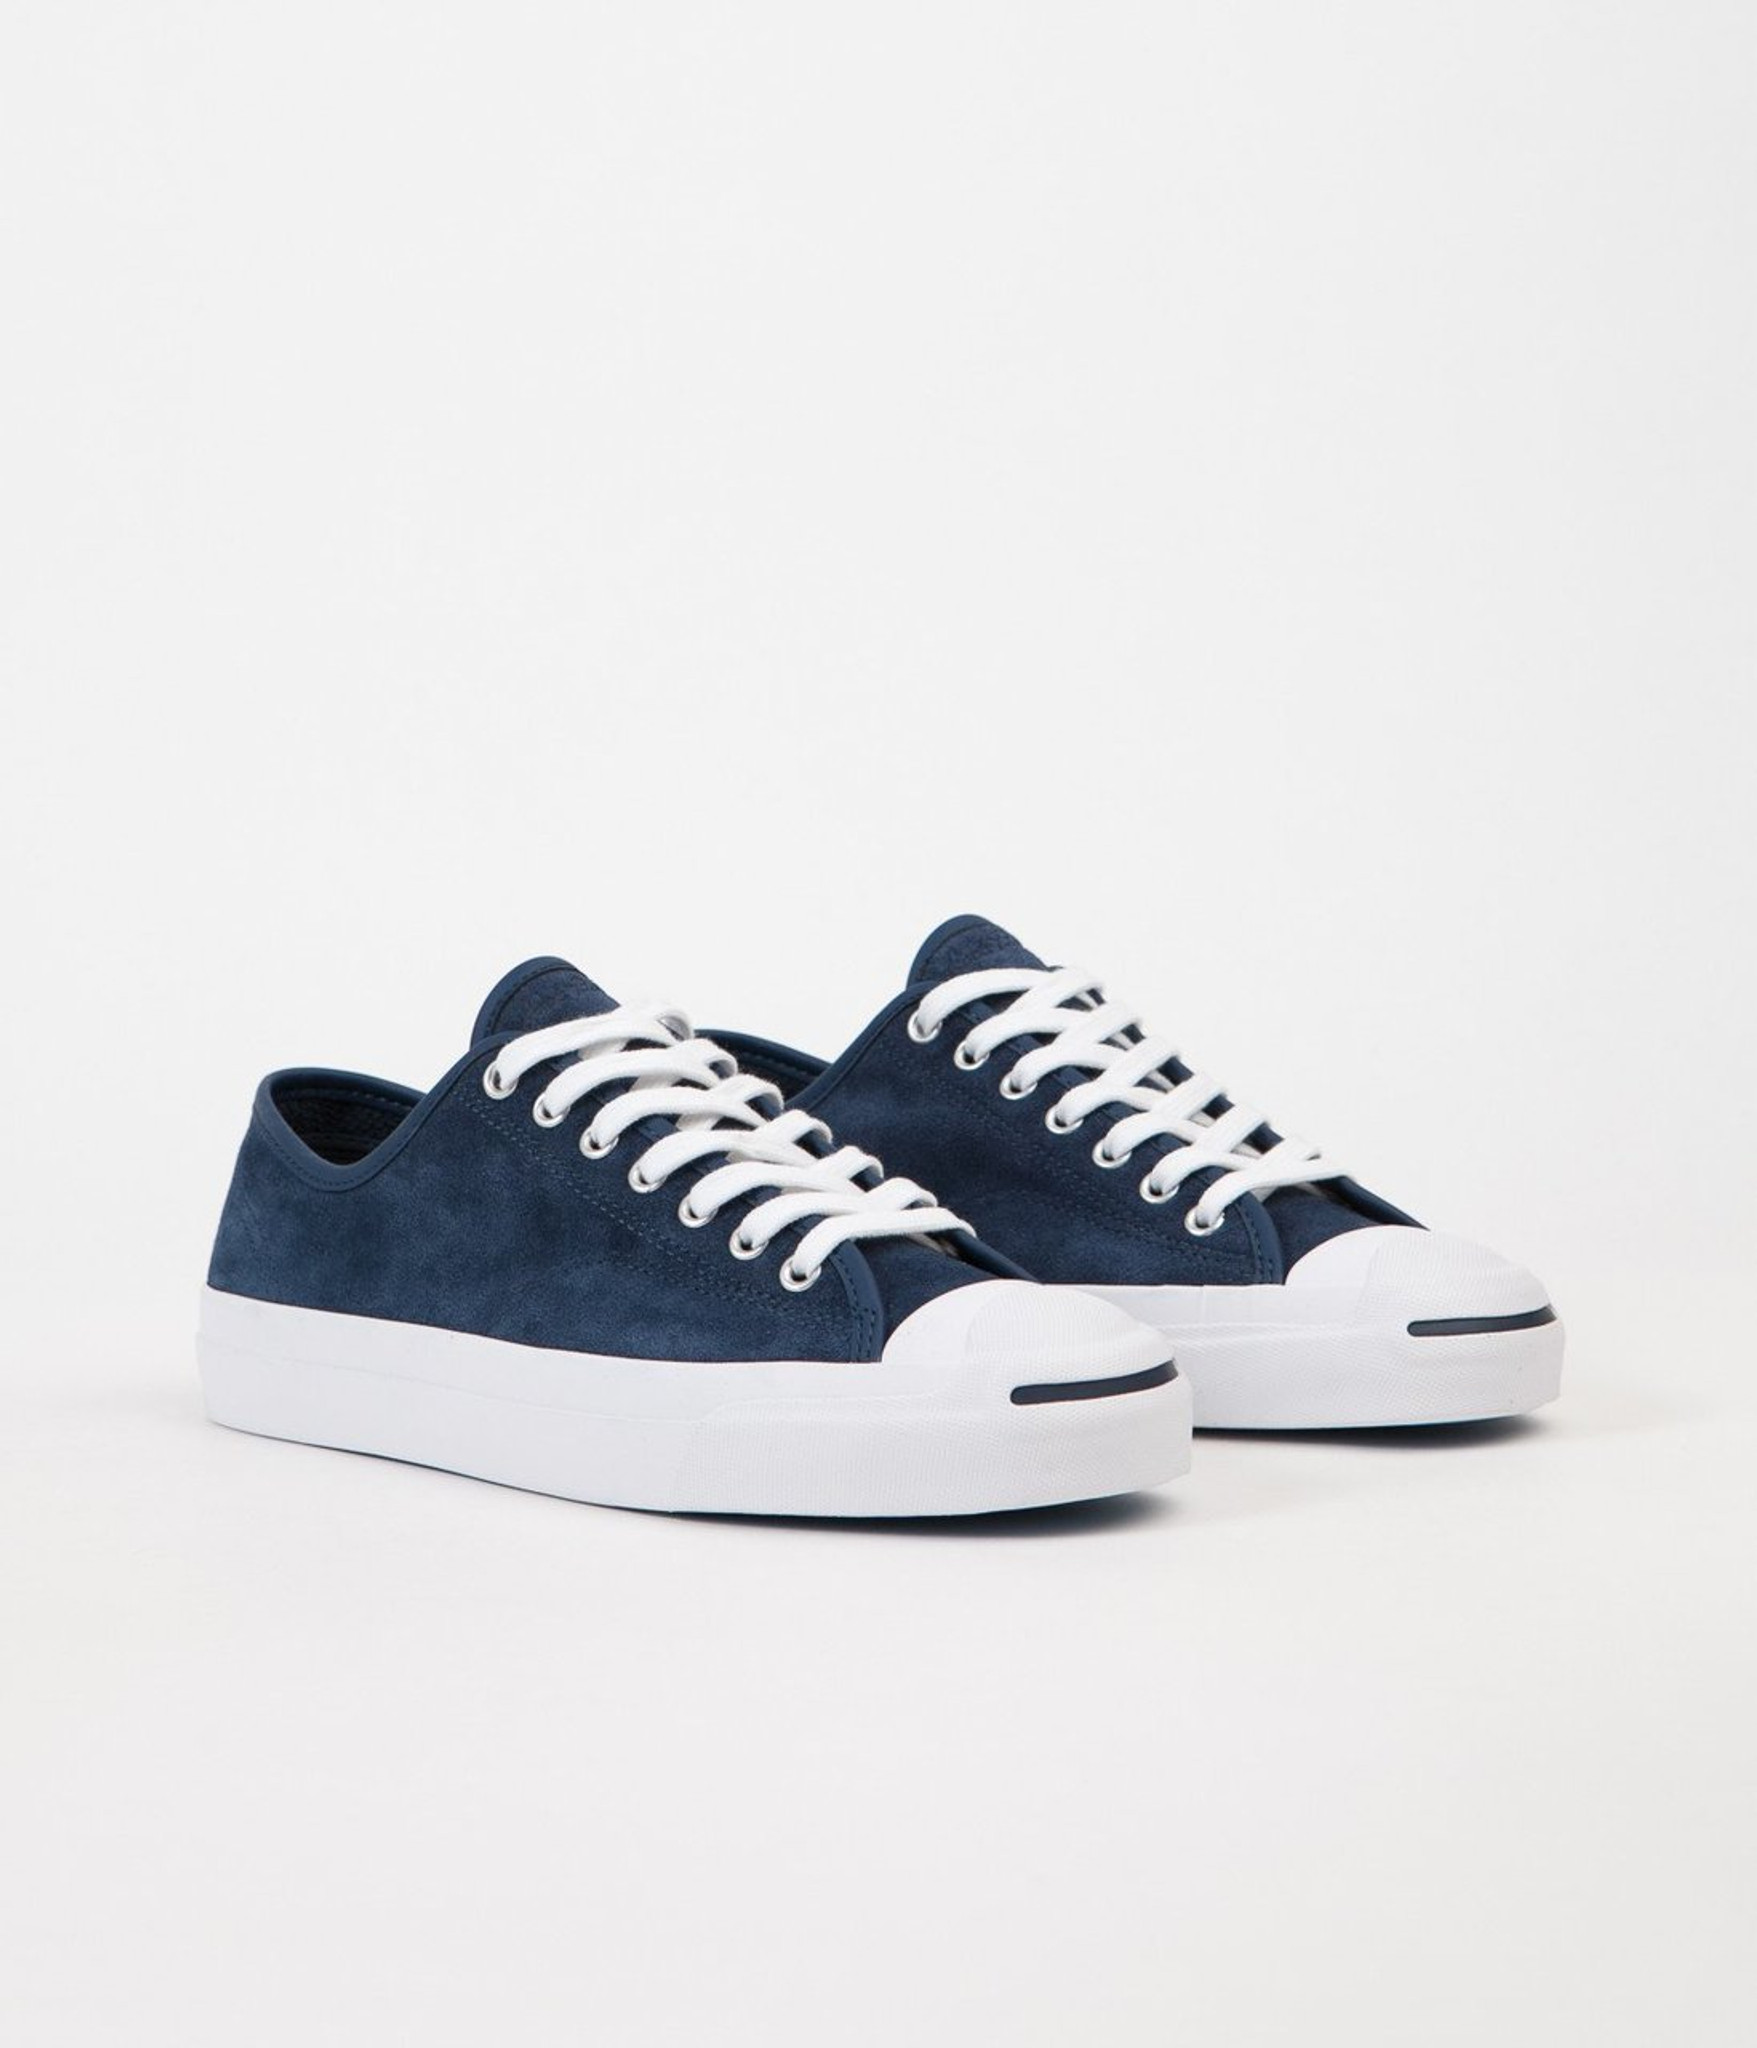 8556b78a6f04 Converse Jack Purcell Pro x Polar Navy Sneakers Shoes FREE SHIPPING ...